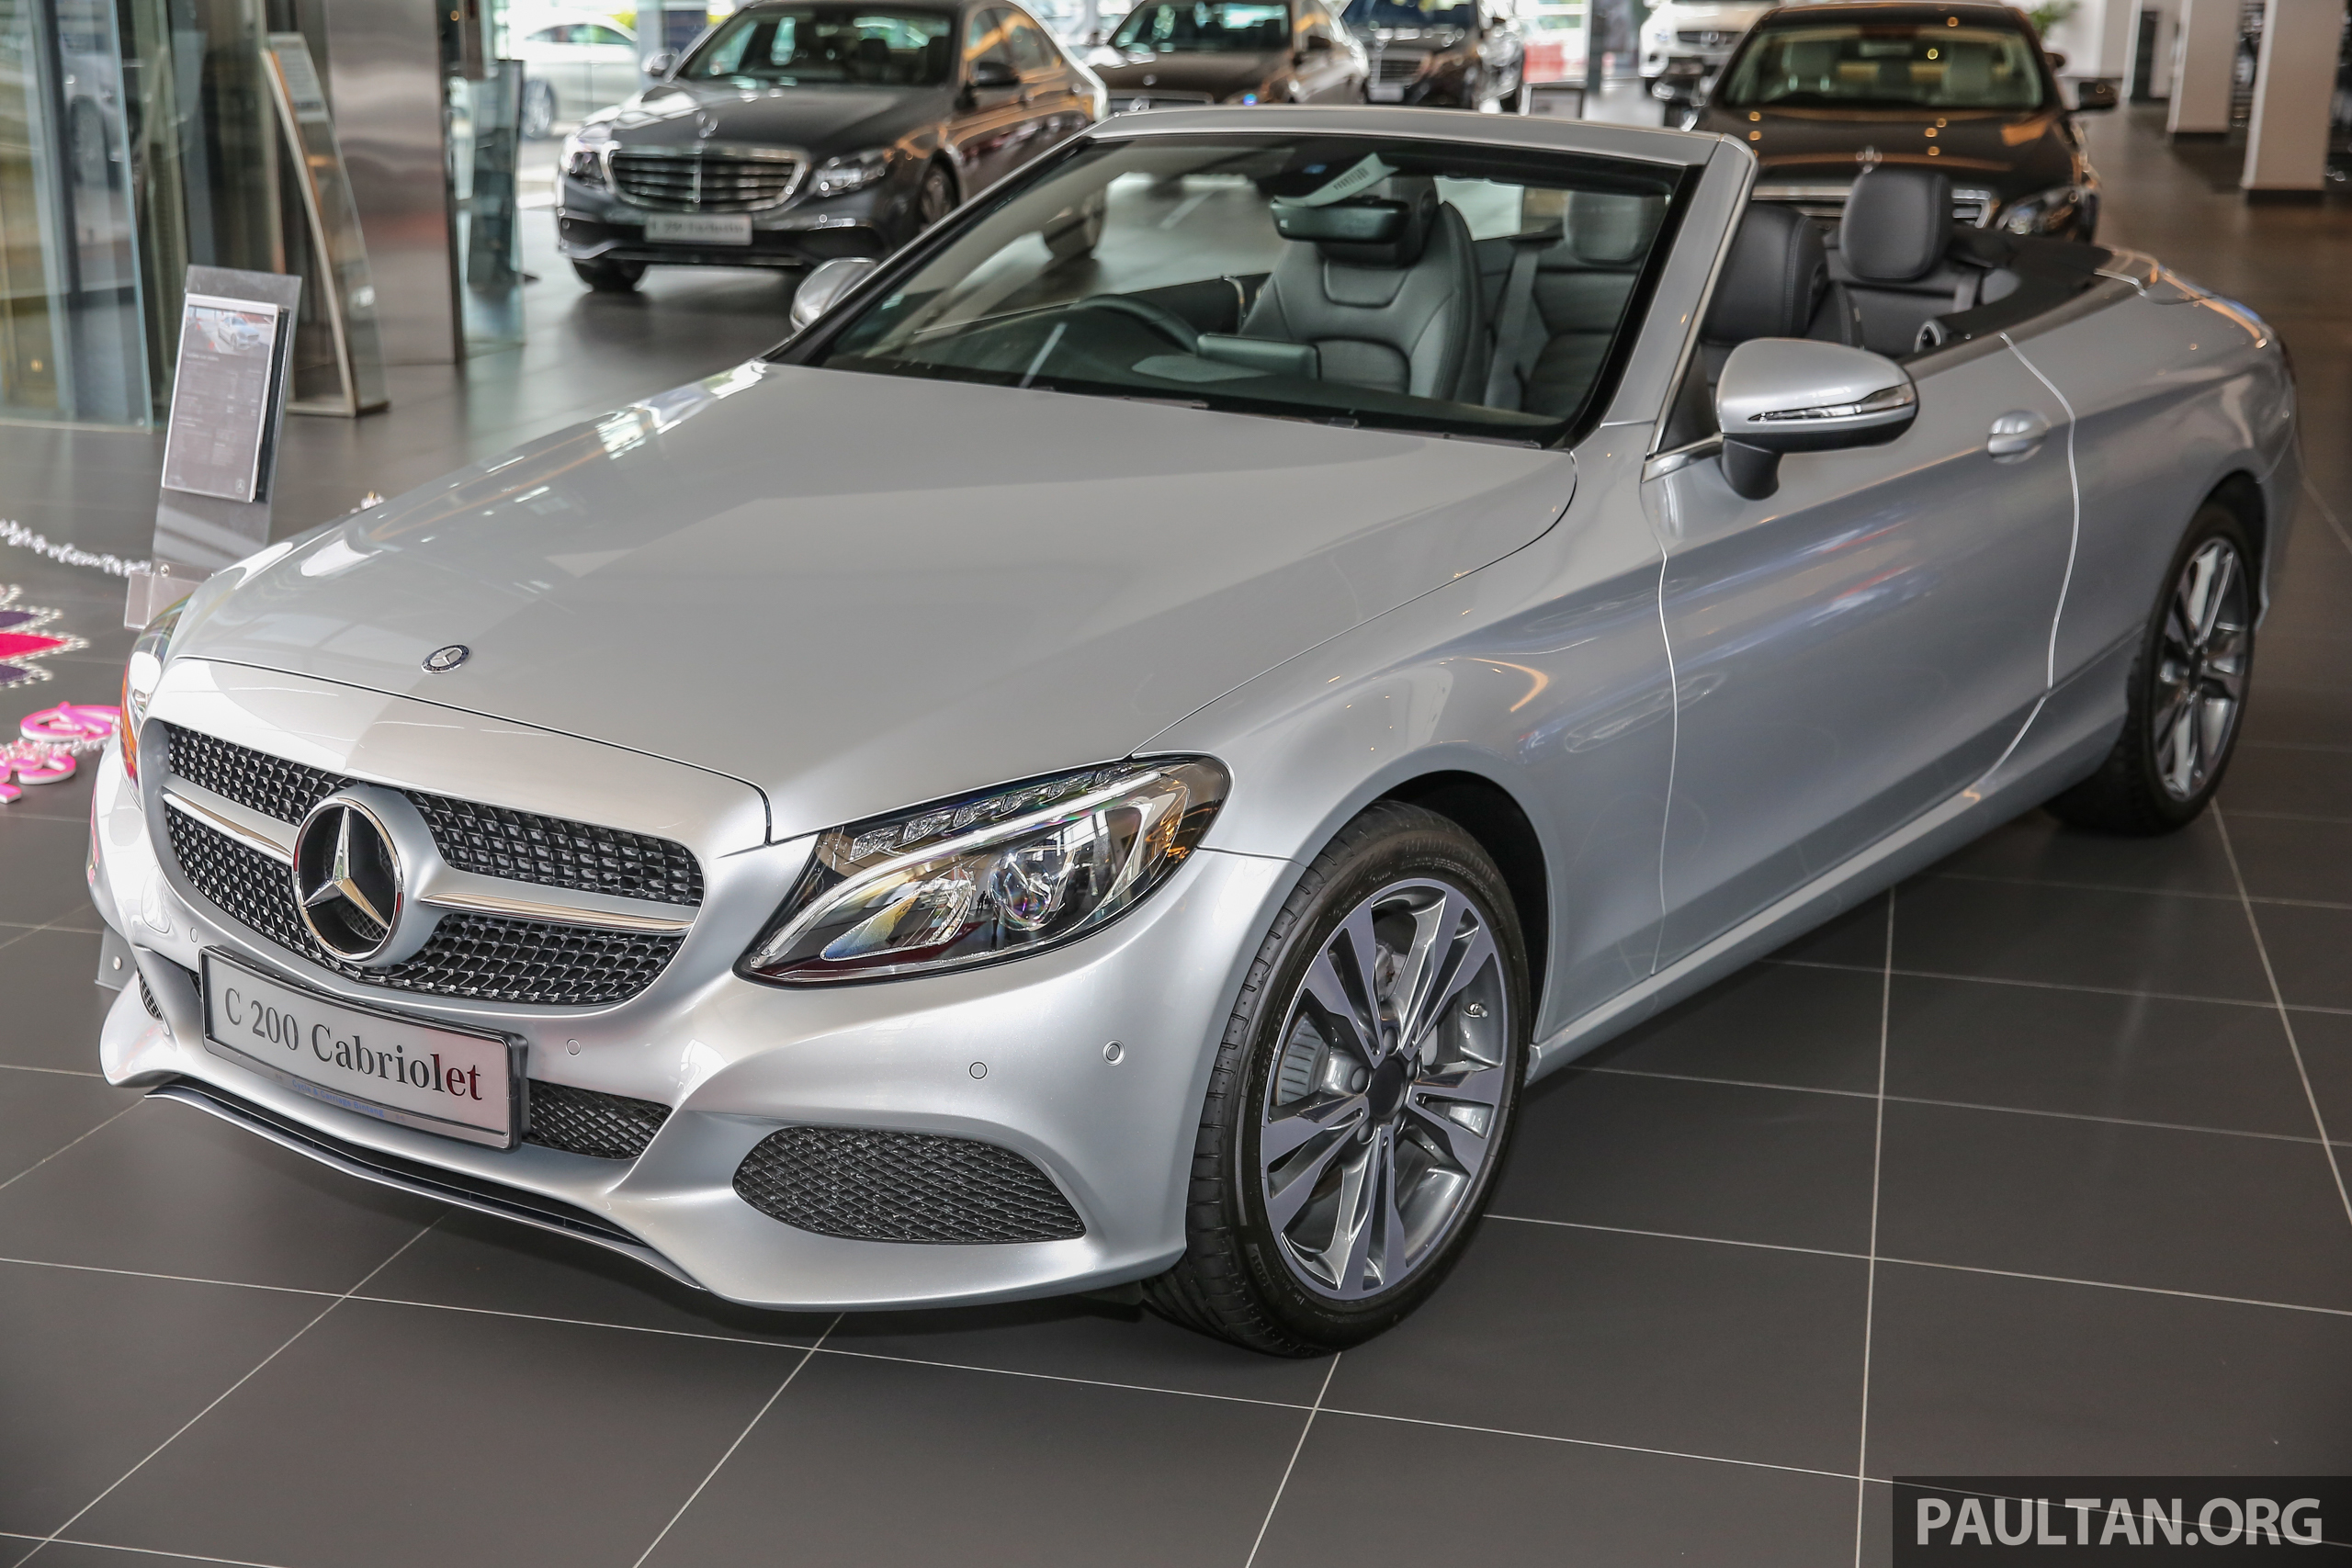 GALLERY Mercedes Benz C200 Cabriolet Up Close Paul Tan